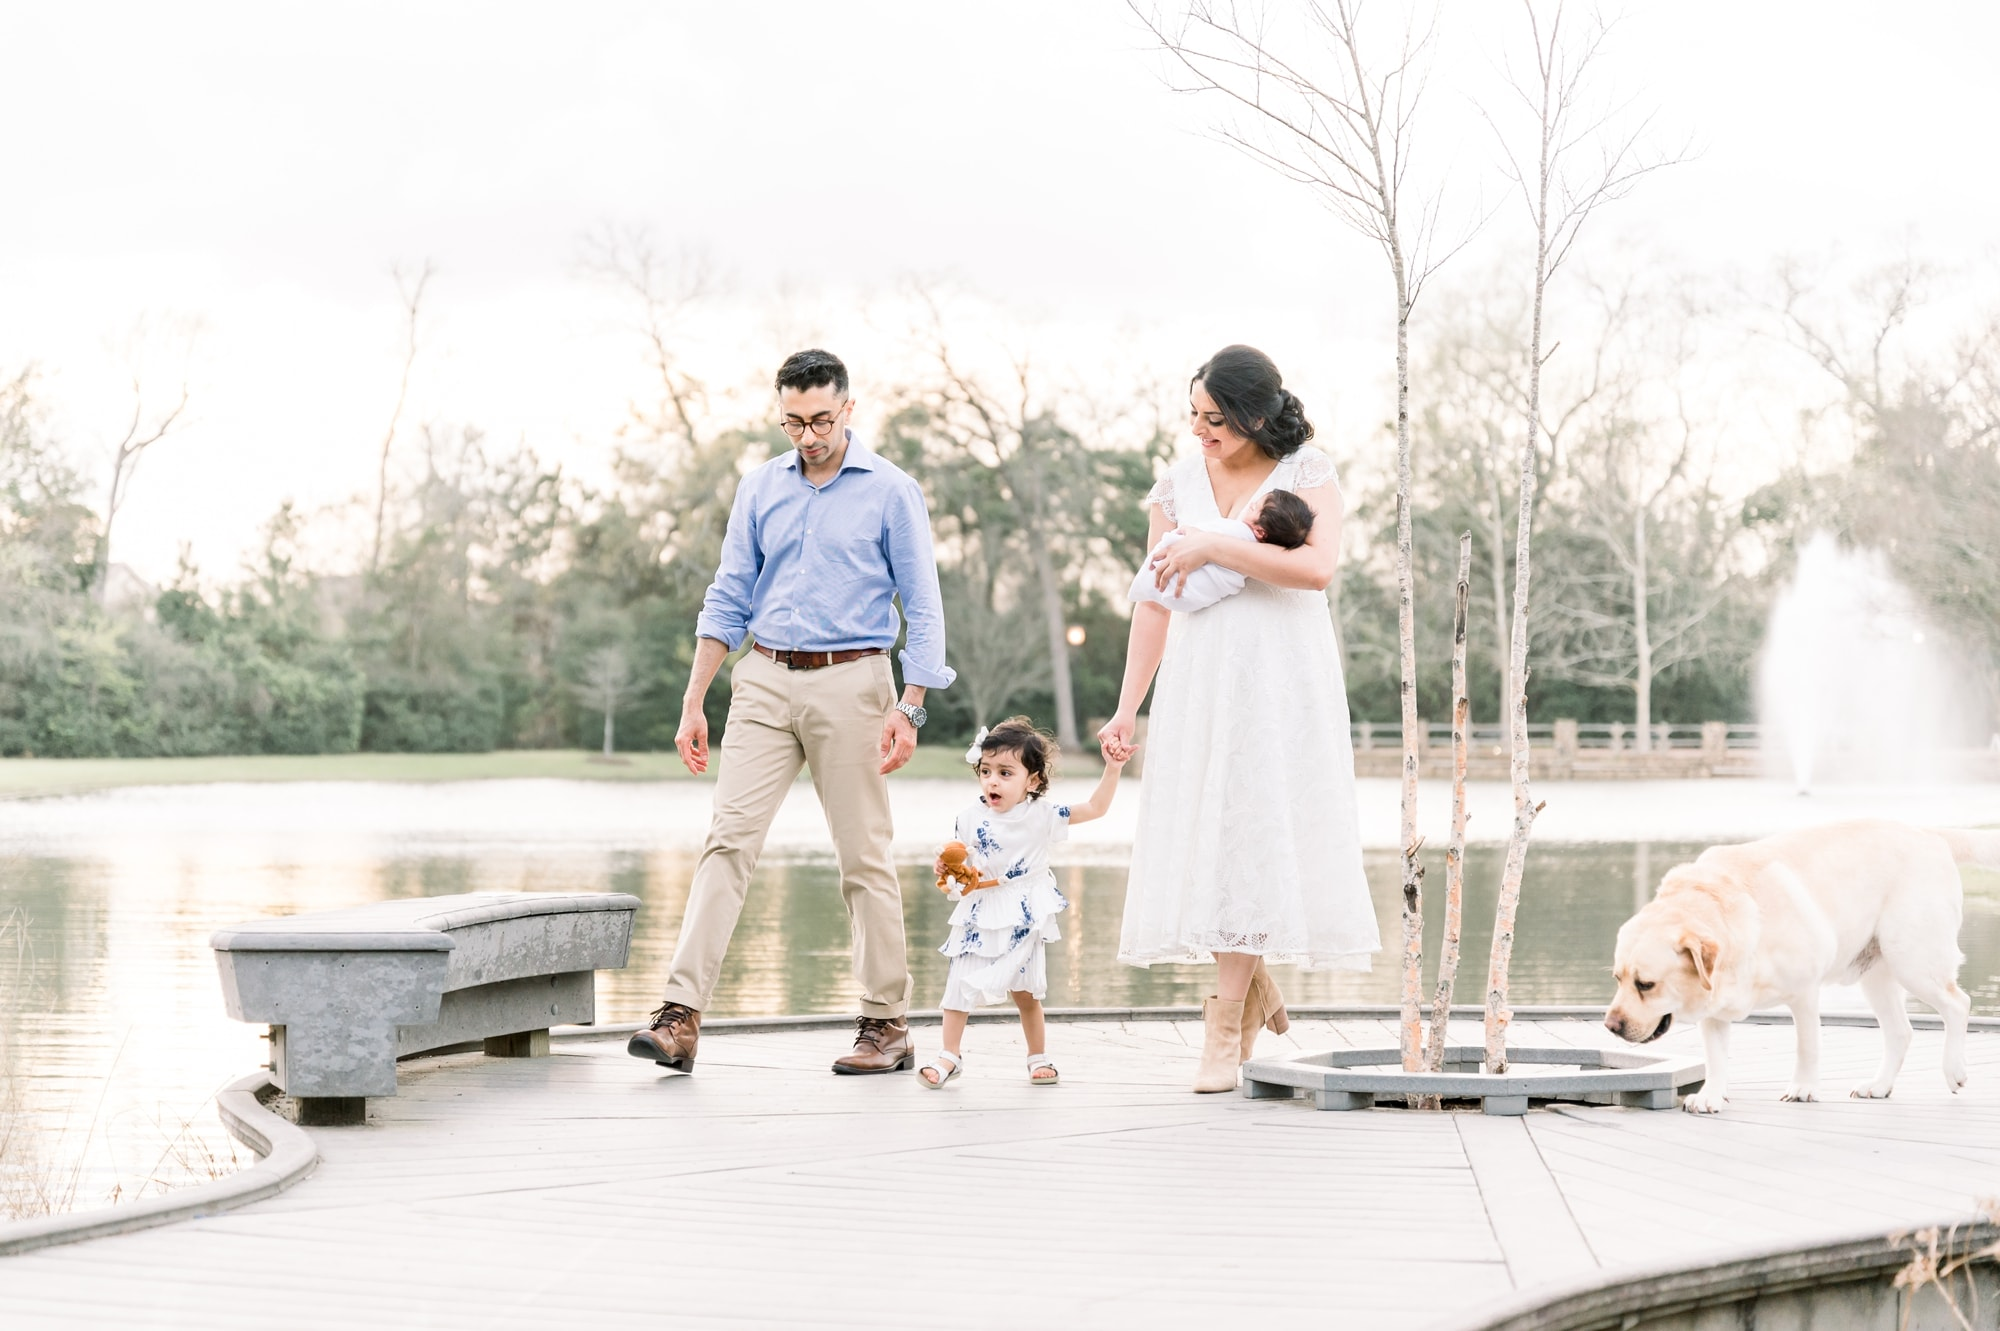 Mom, Dad and toddler walking while Mom holds baby in Frisco, TX park. Photo by Aimee Hamilton Photography.